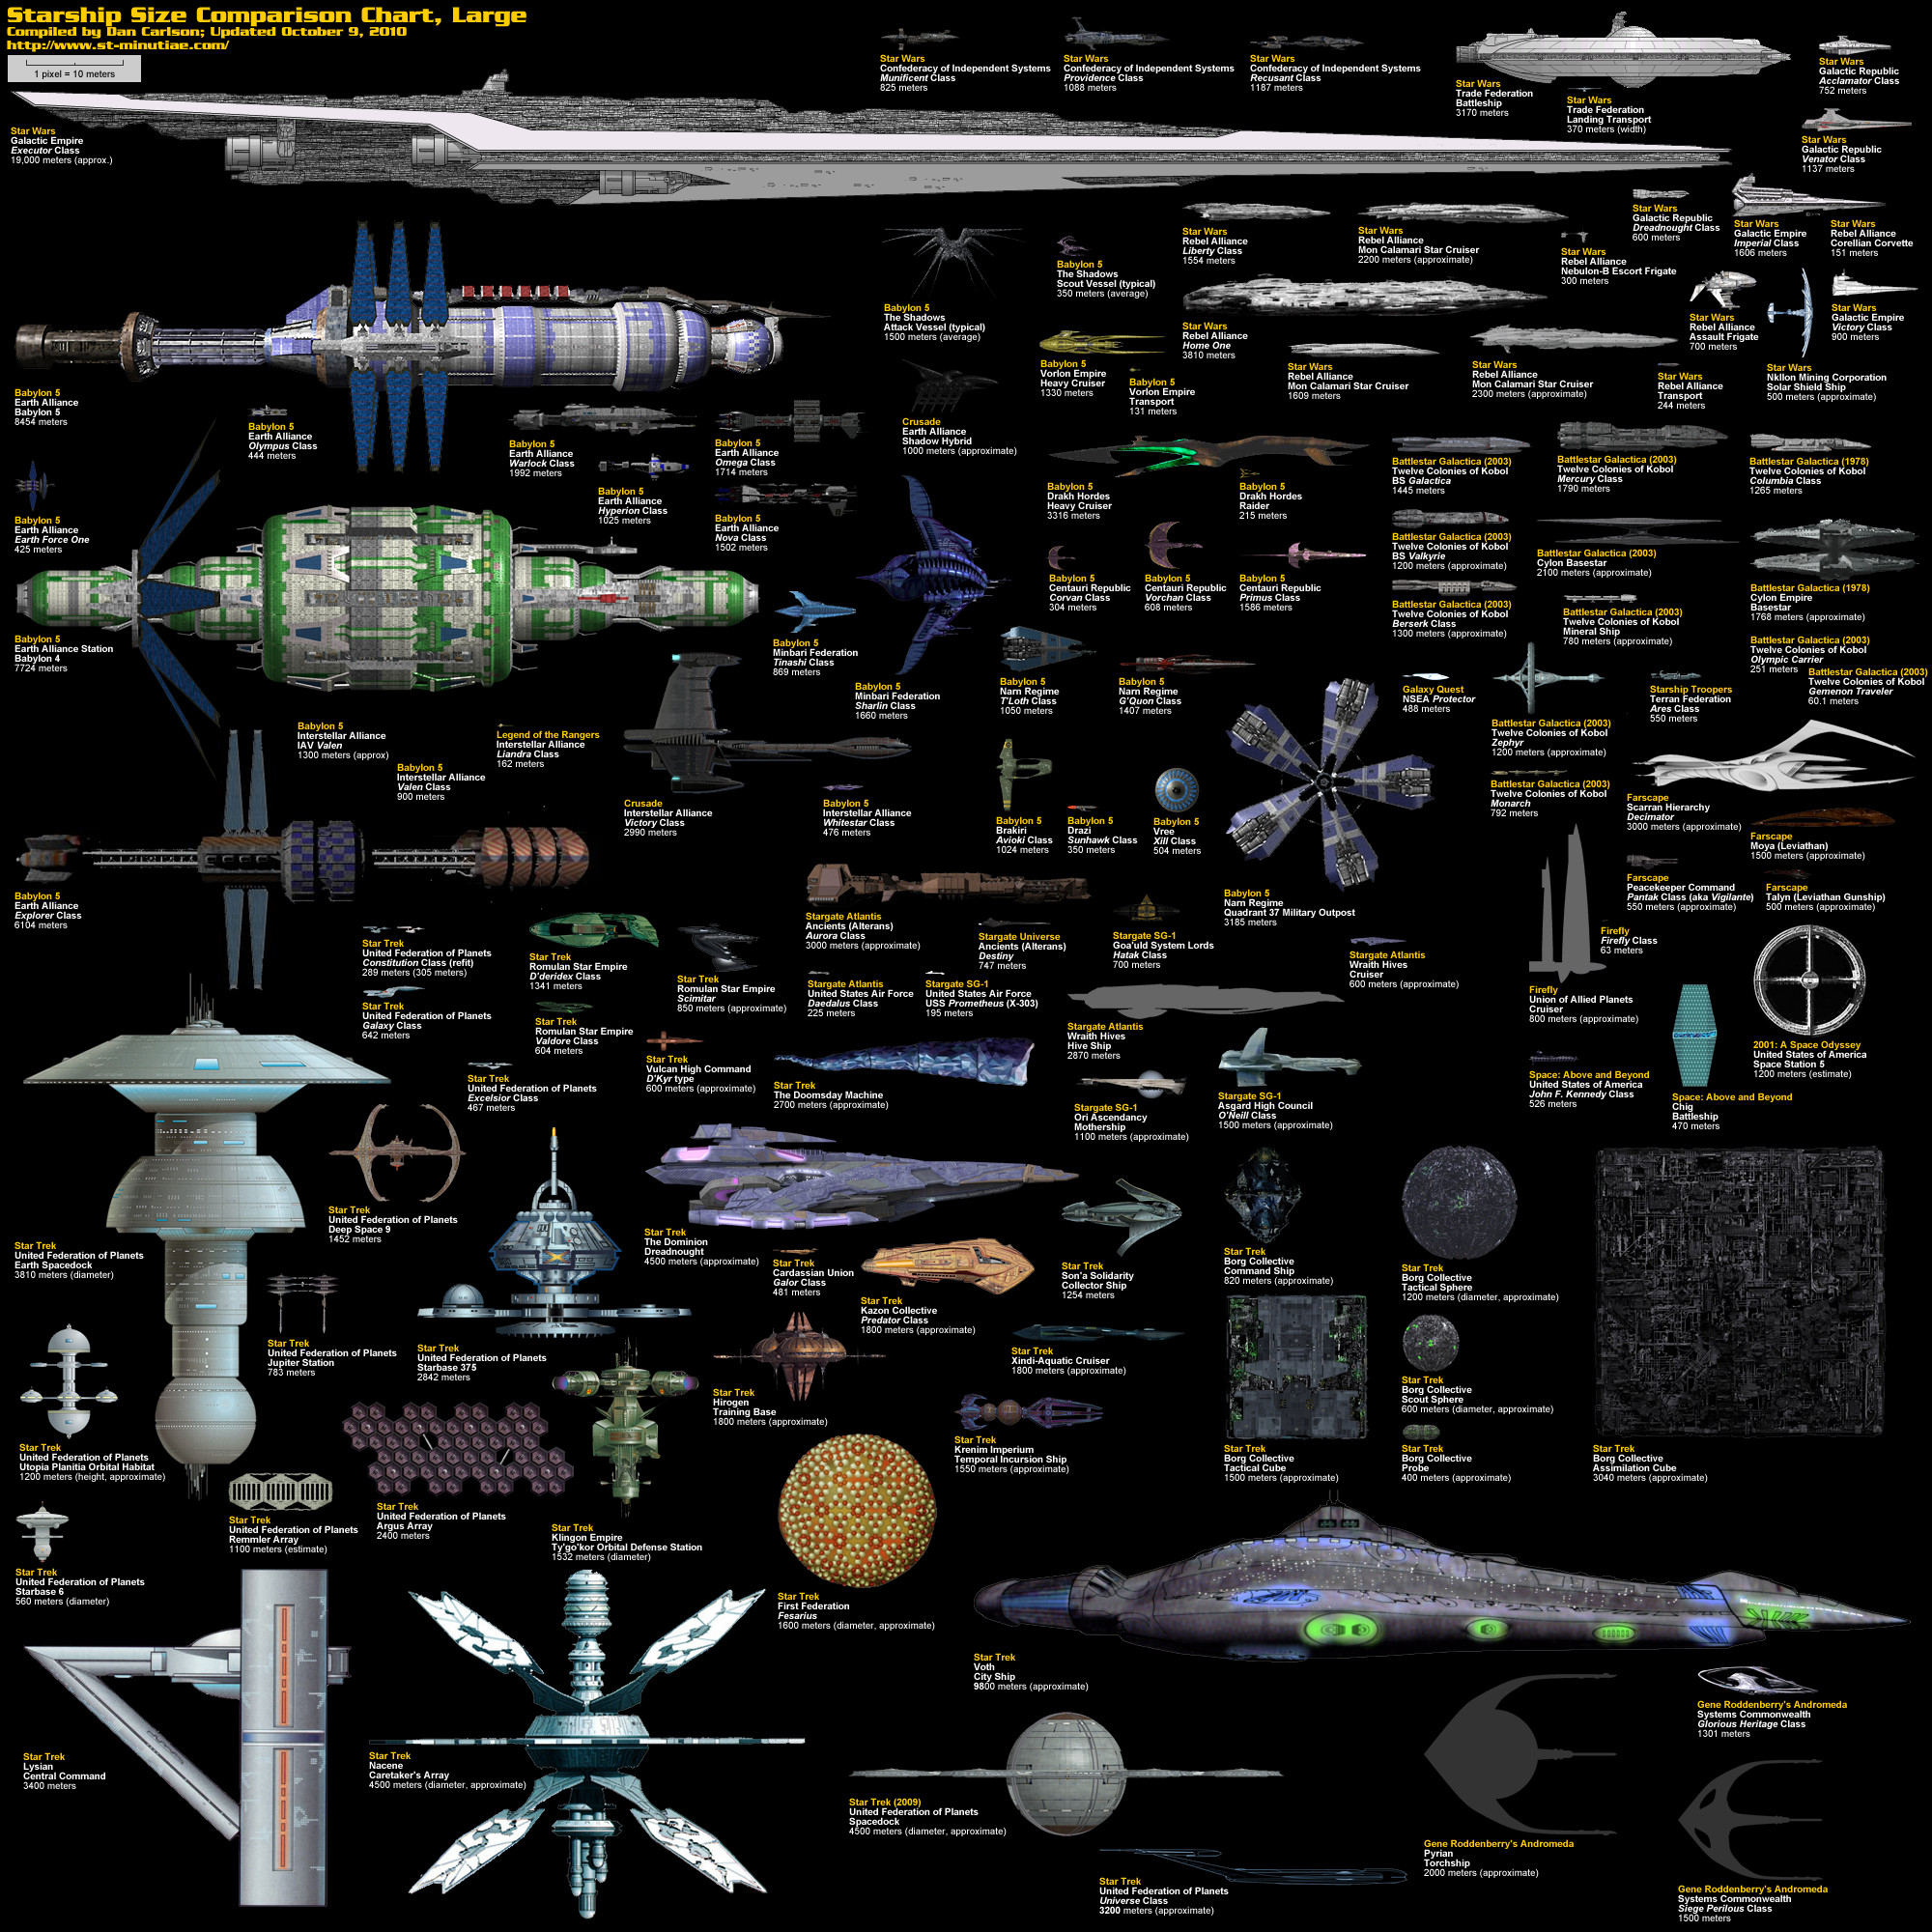 starship-size-comparison-chart2.png